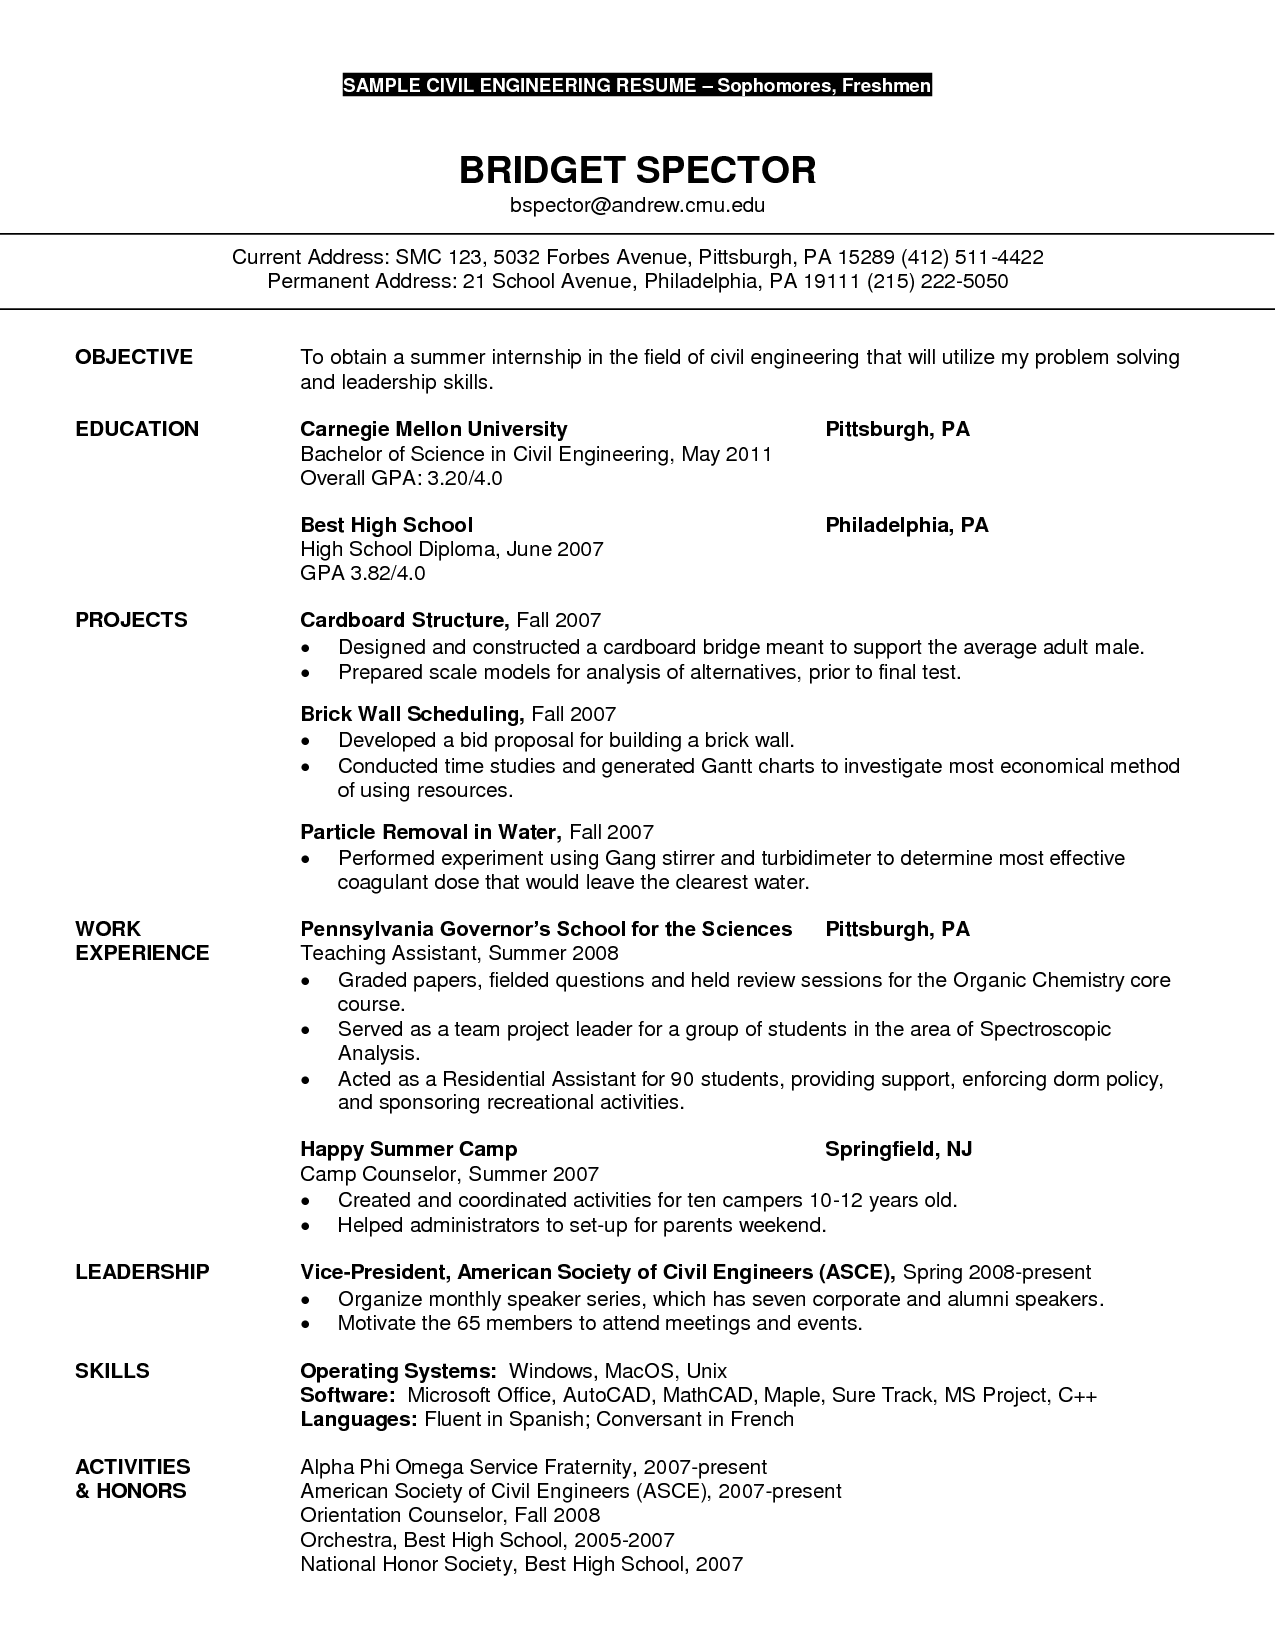 How To Set Up A Resume Beauteous Civil Engineer Resume Sample  Httpwwwresumecareercivil